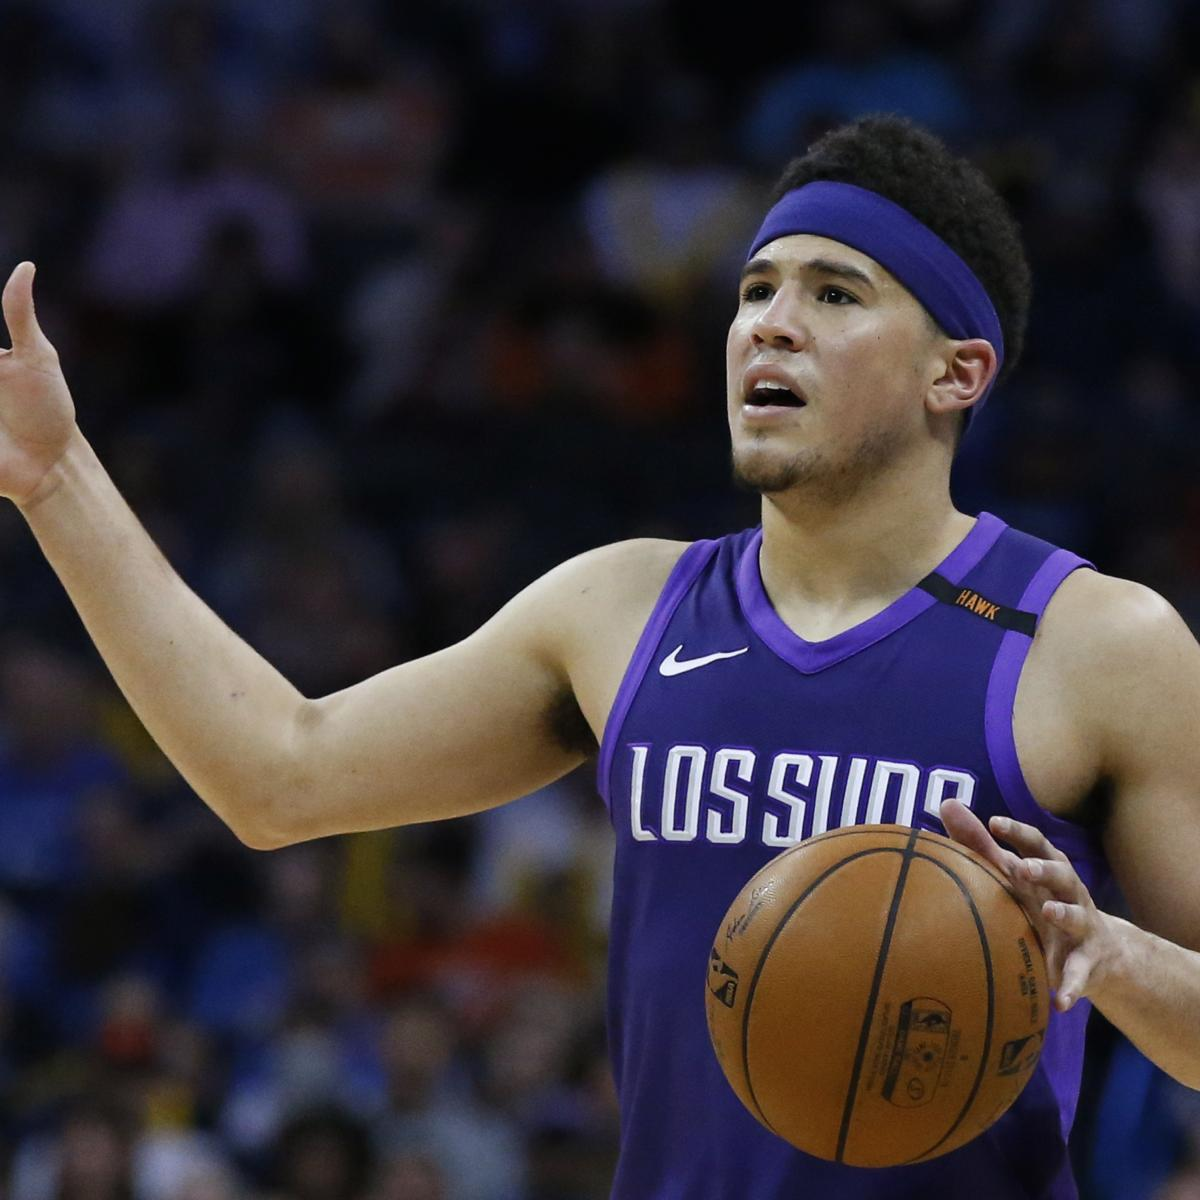 Devin Booker Reportedly to Undergo Surgery on Hand Injury ae9999bde